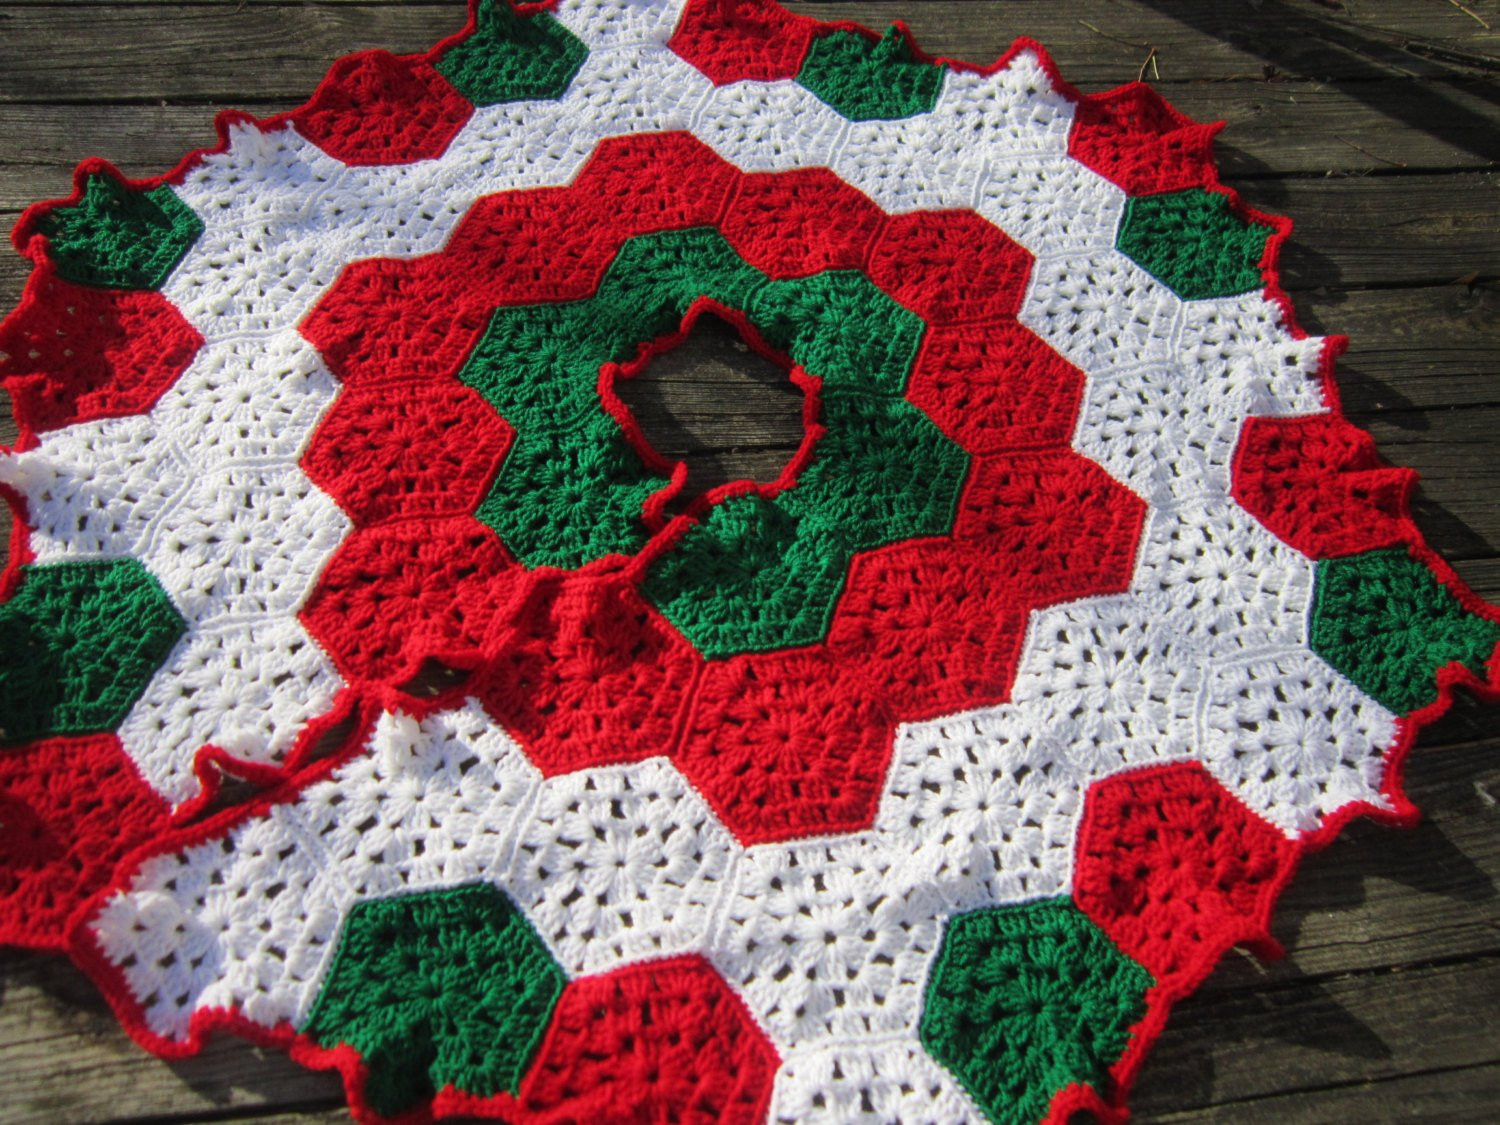 Christmas Tree Skirt Crocheted Granny Hexagons in Red Green